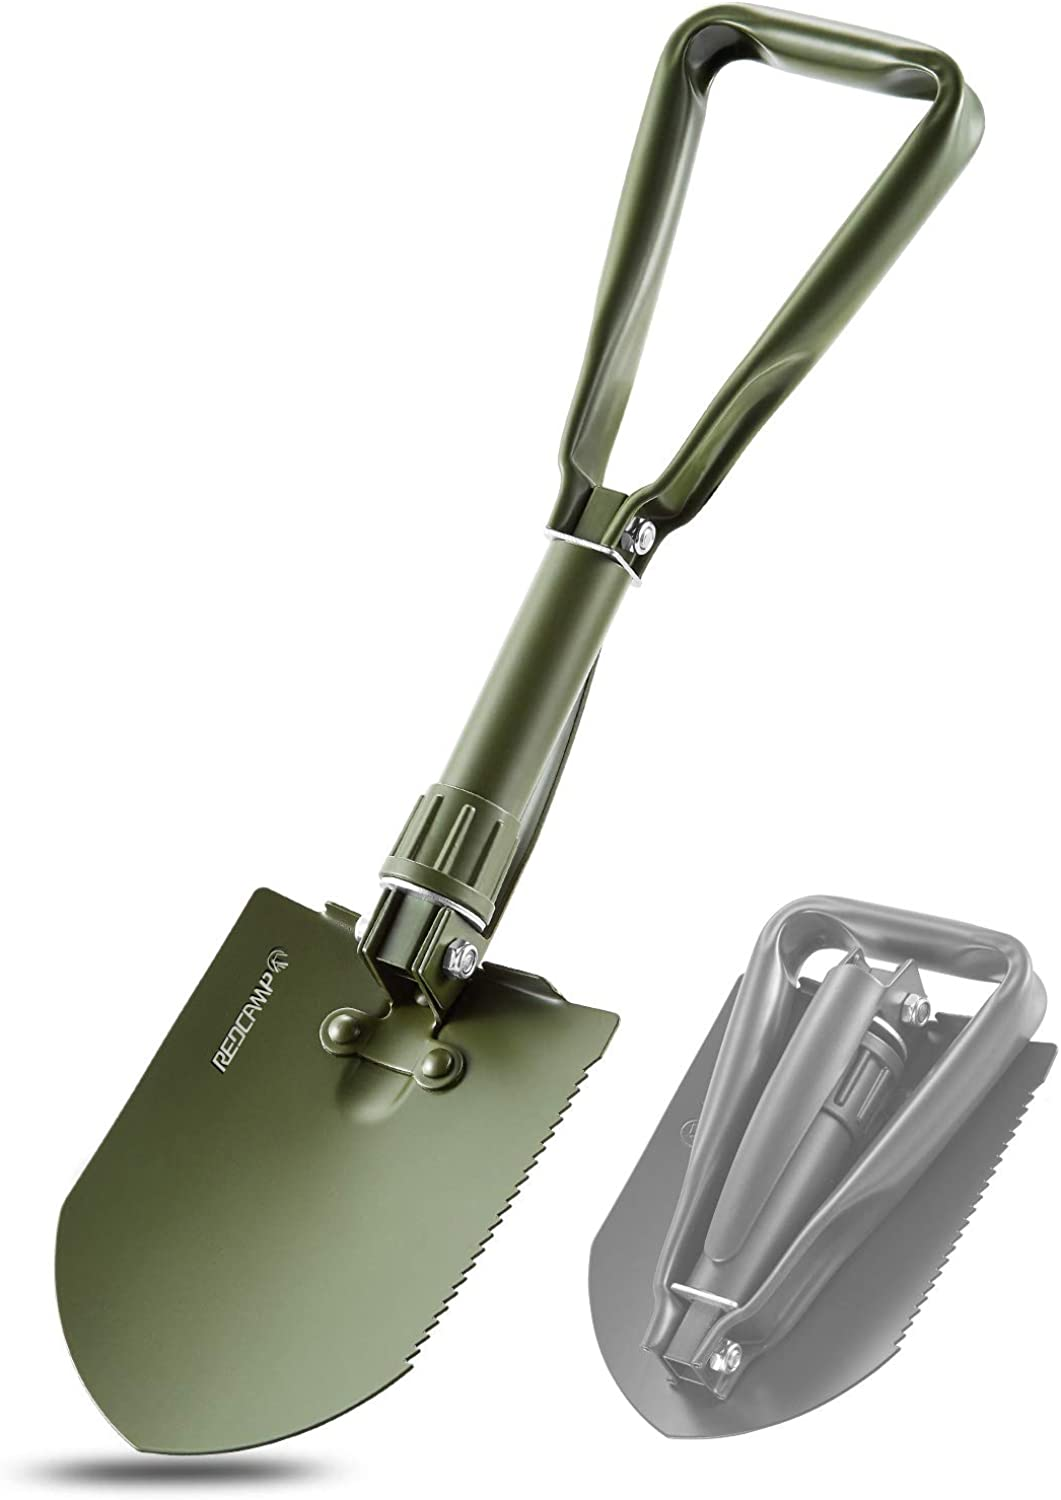 REDCAMP Military Folding Camping Shovel,High Carbon Steel Entrenching Tool Tri-fold Handle Shovel with Cover